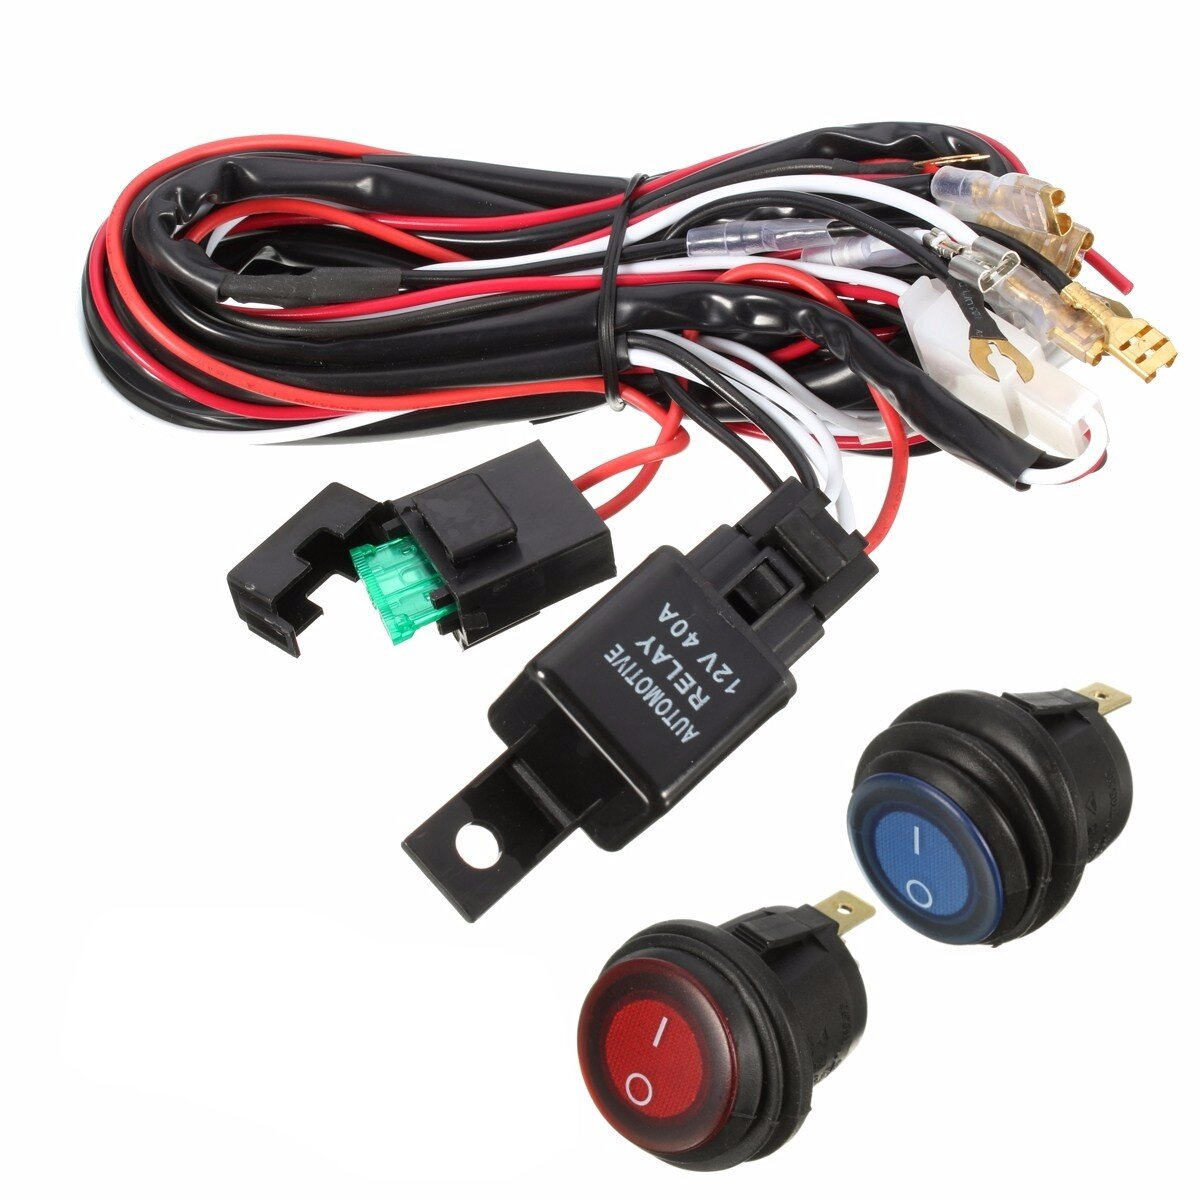 off road light wiring diagram with relay house electrical uk flashlight wire harness library 40a 12v led bar on switch for jeep